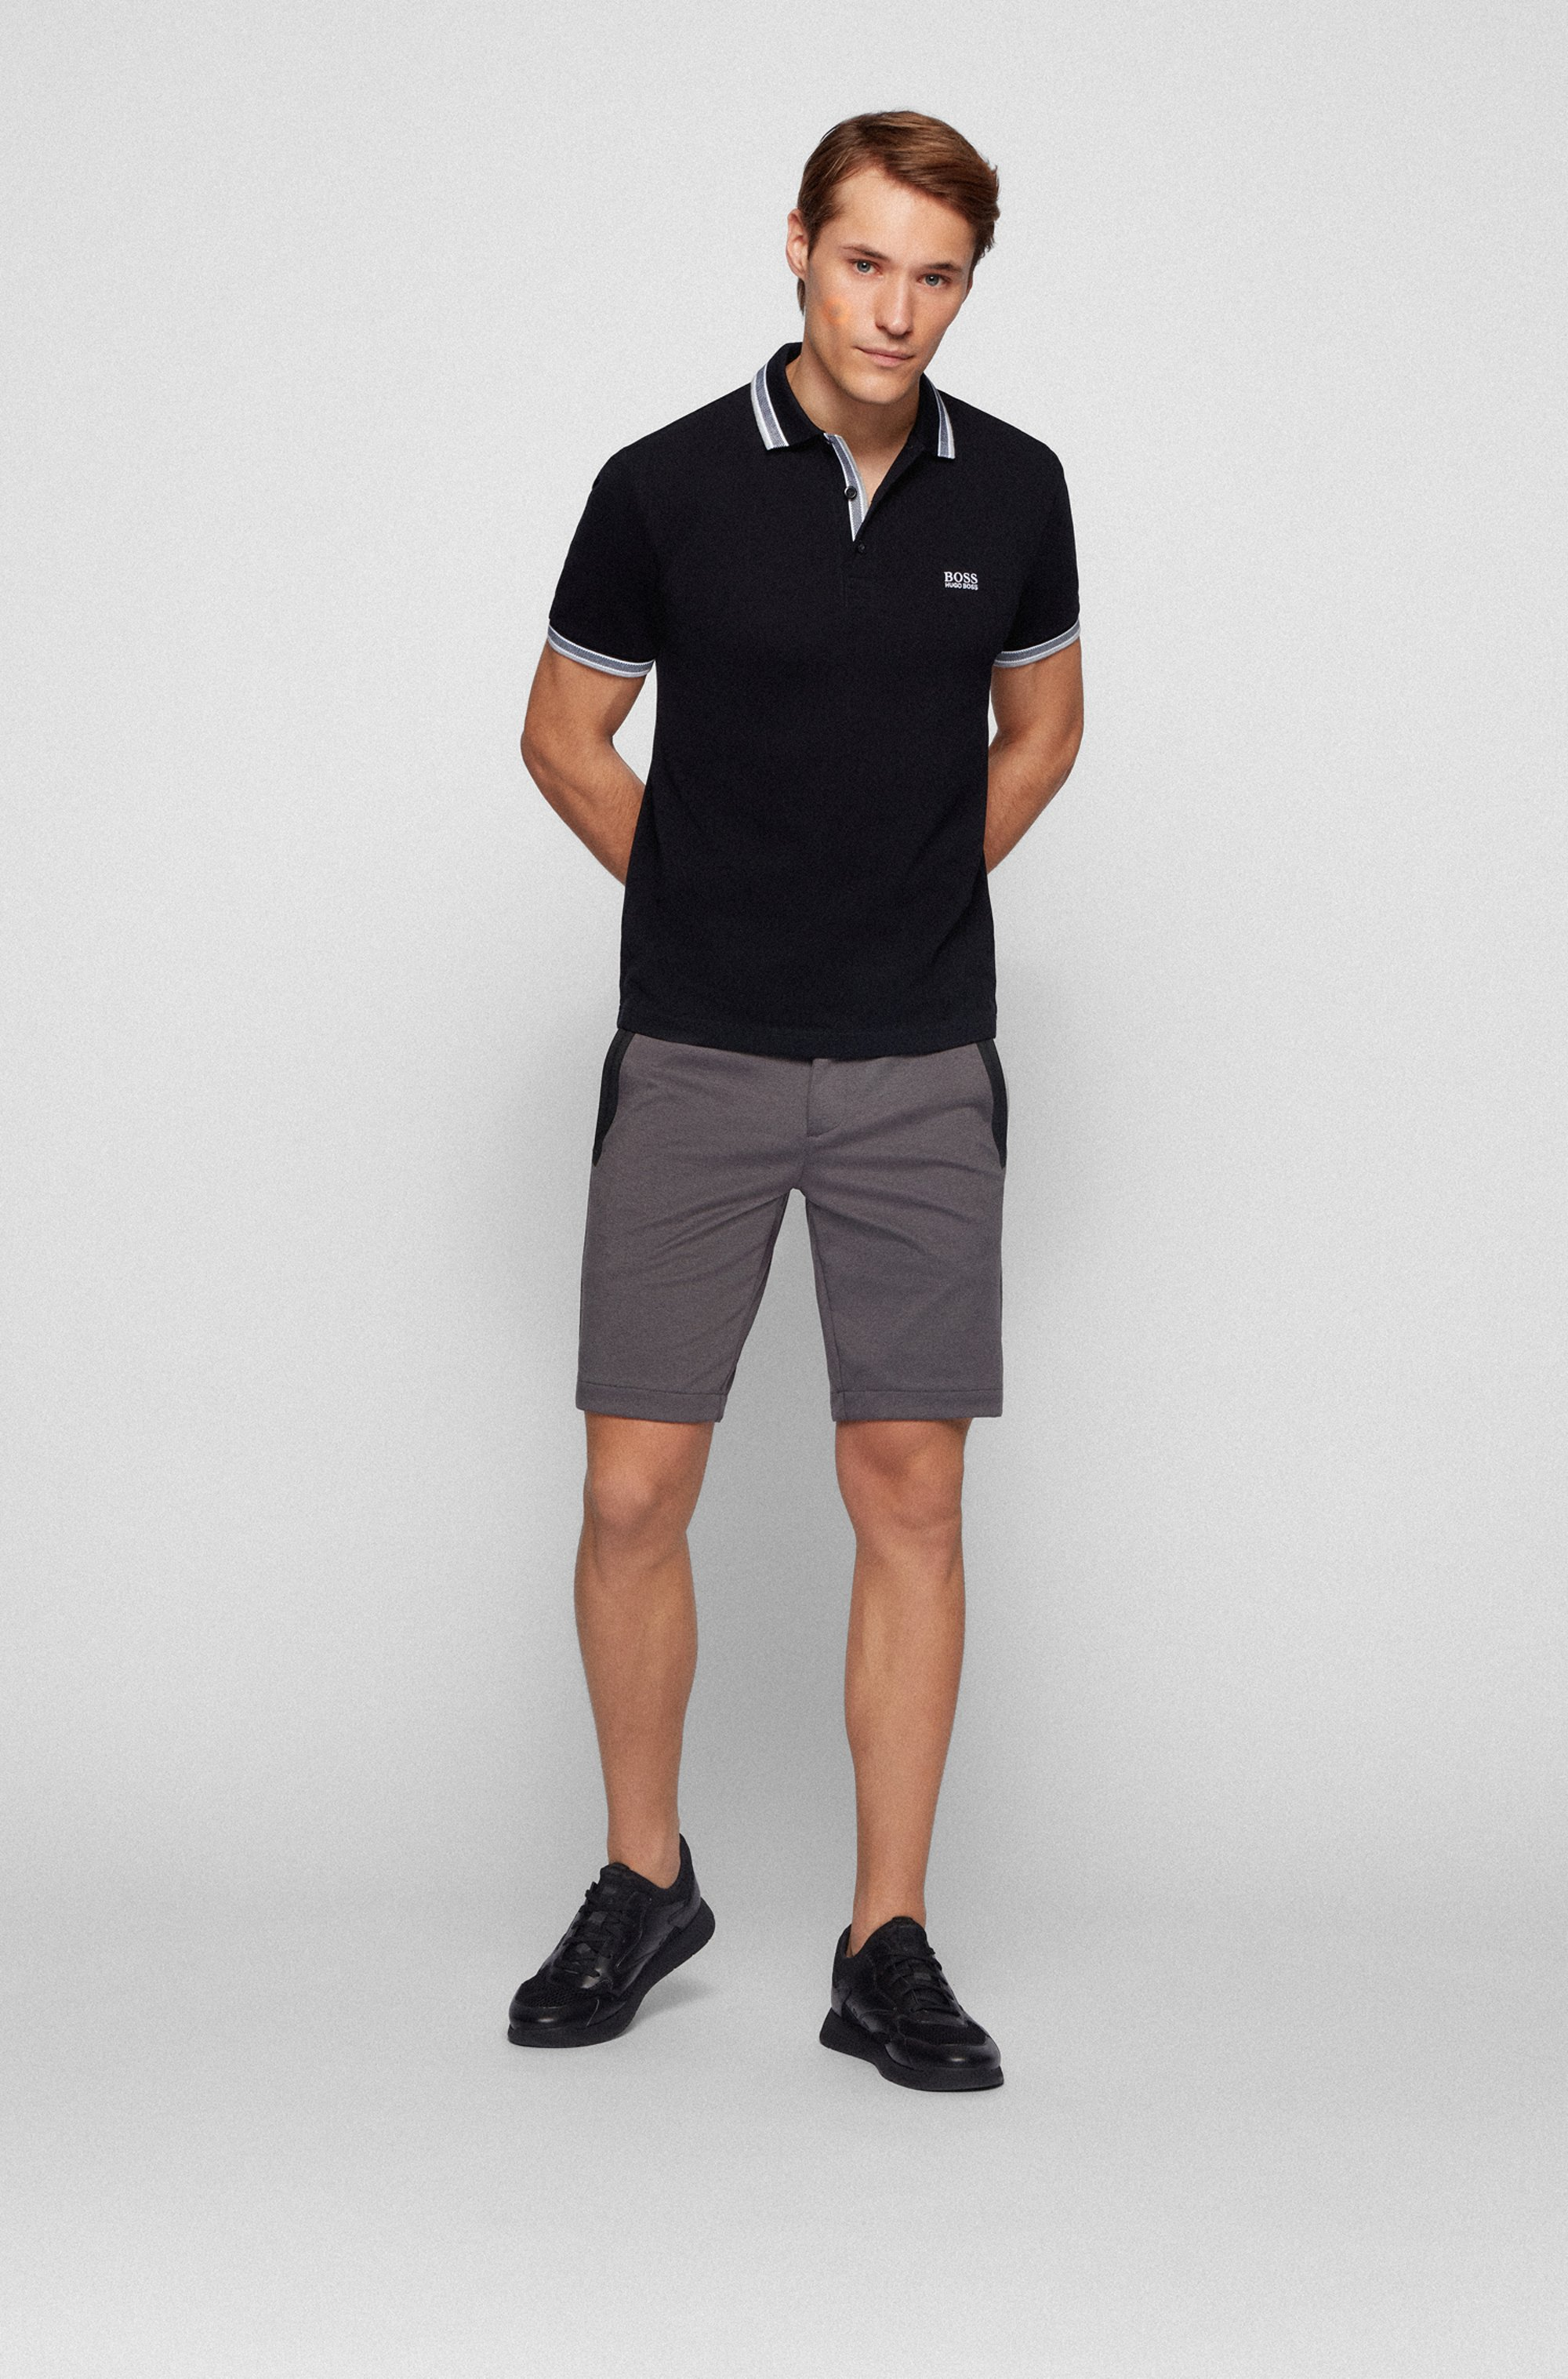 Cotton-piqué polo shirt with striped collar and cuffs